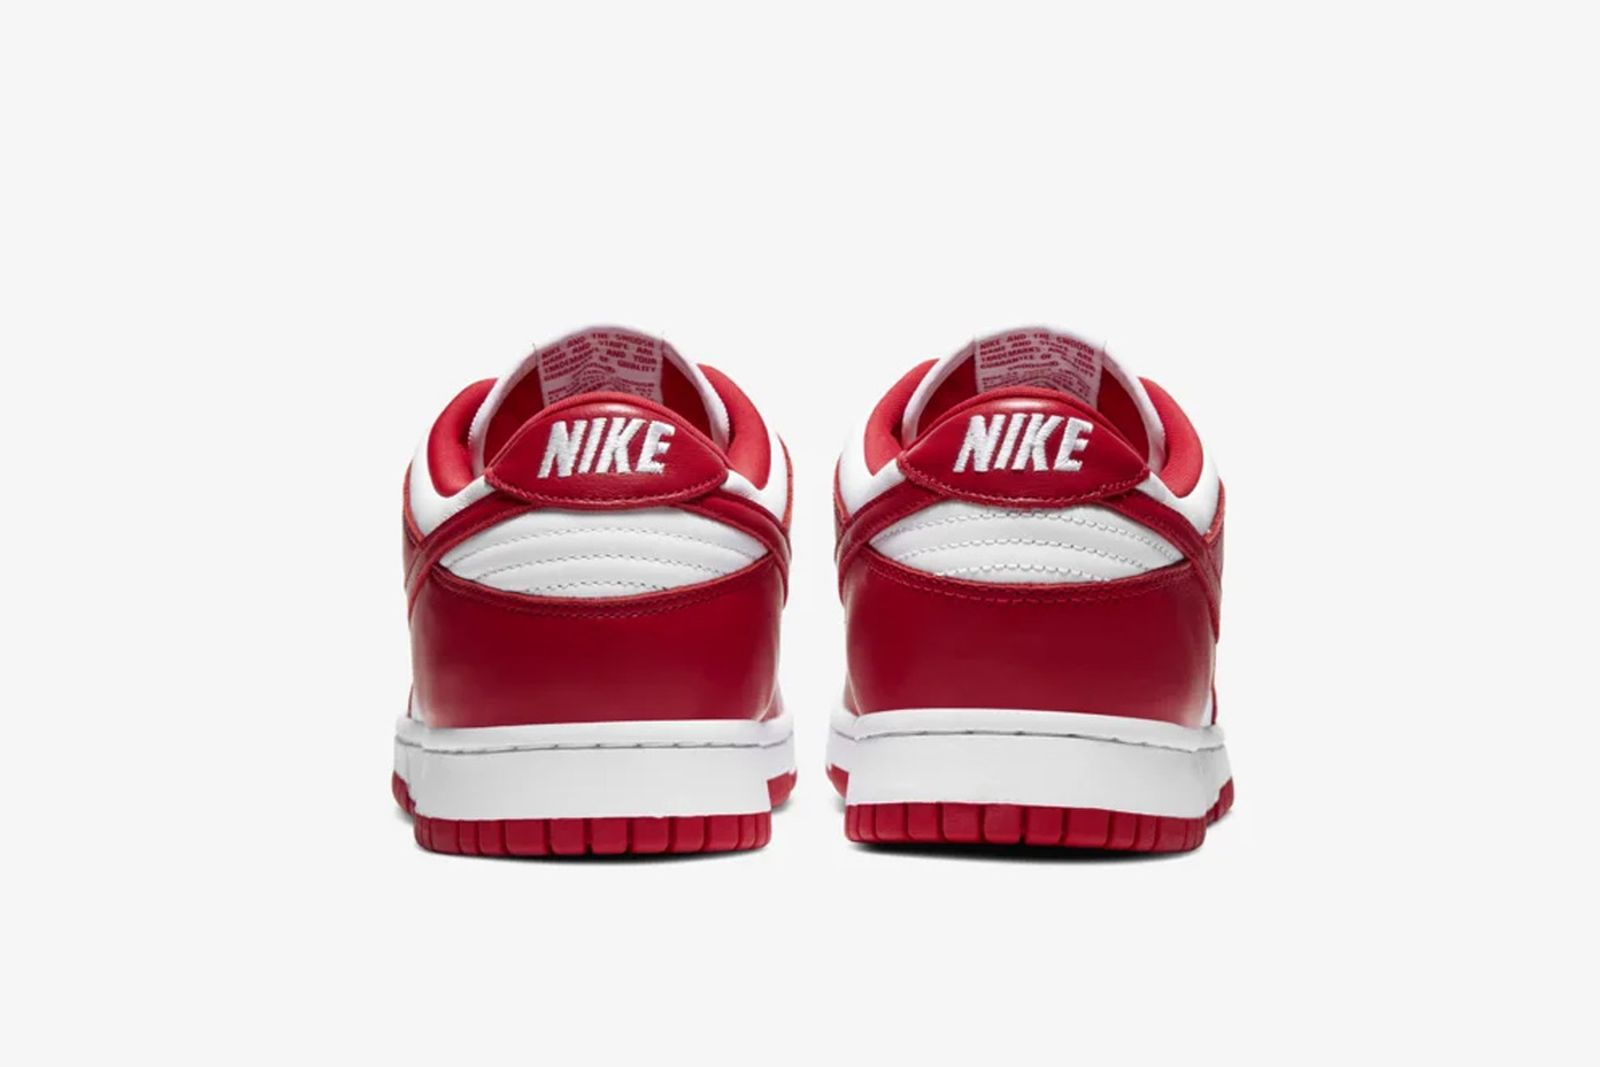 Red and white Nike Dunk Low side view